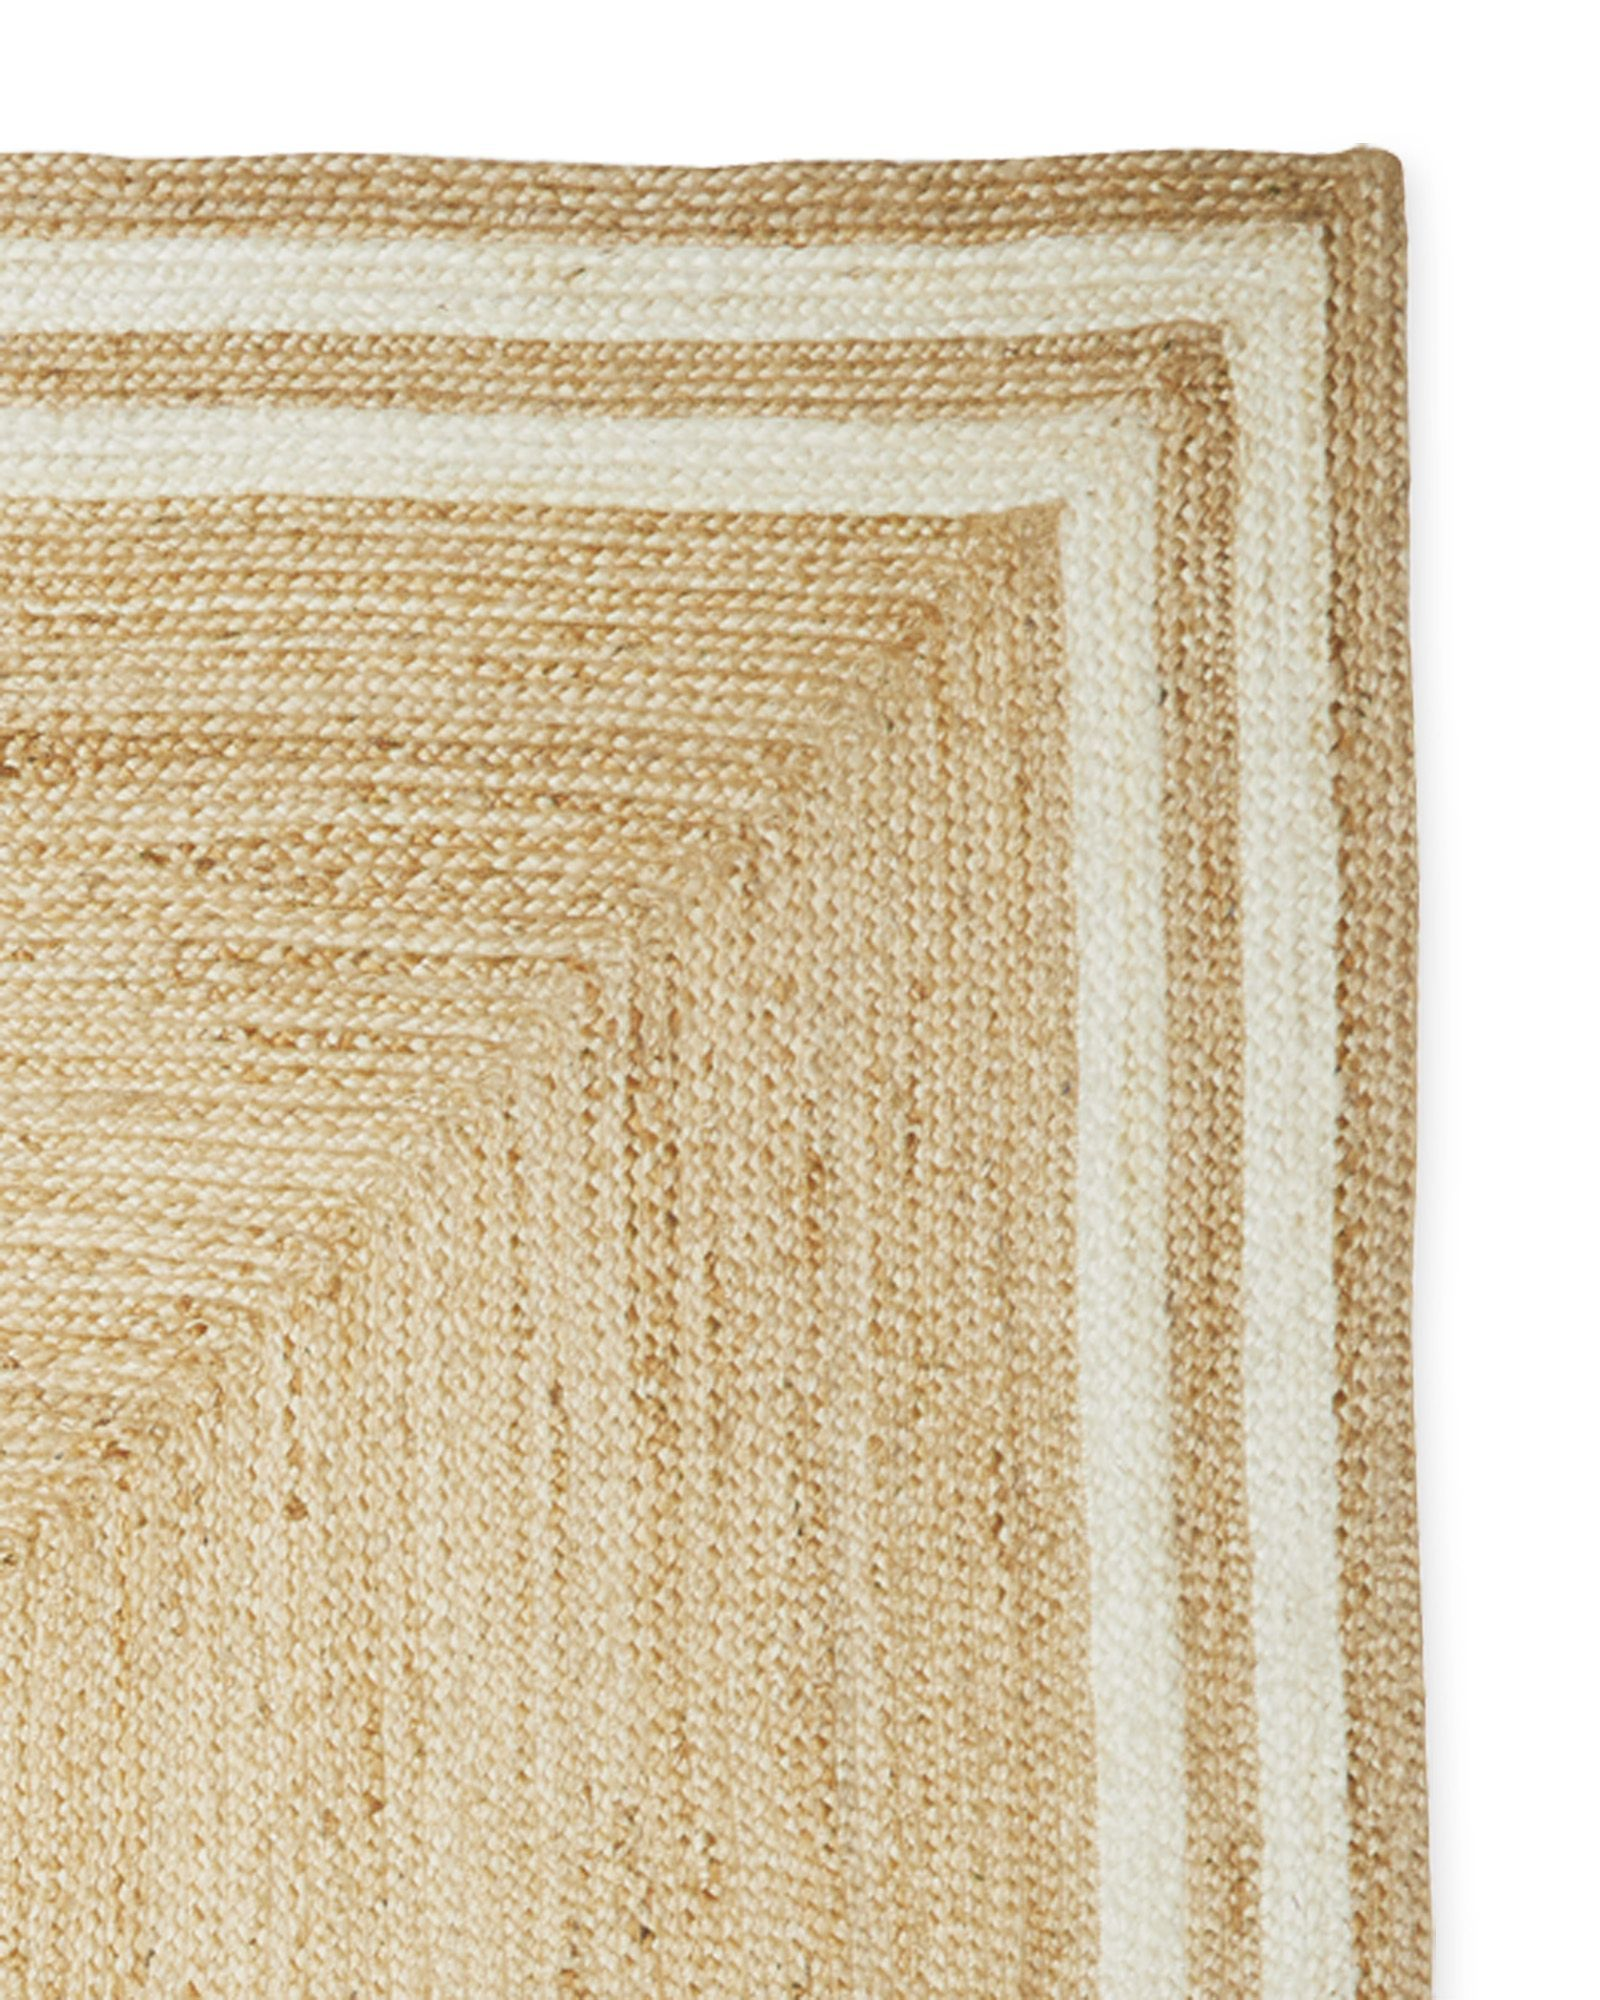 Designed In House This Square Rug Is